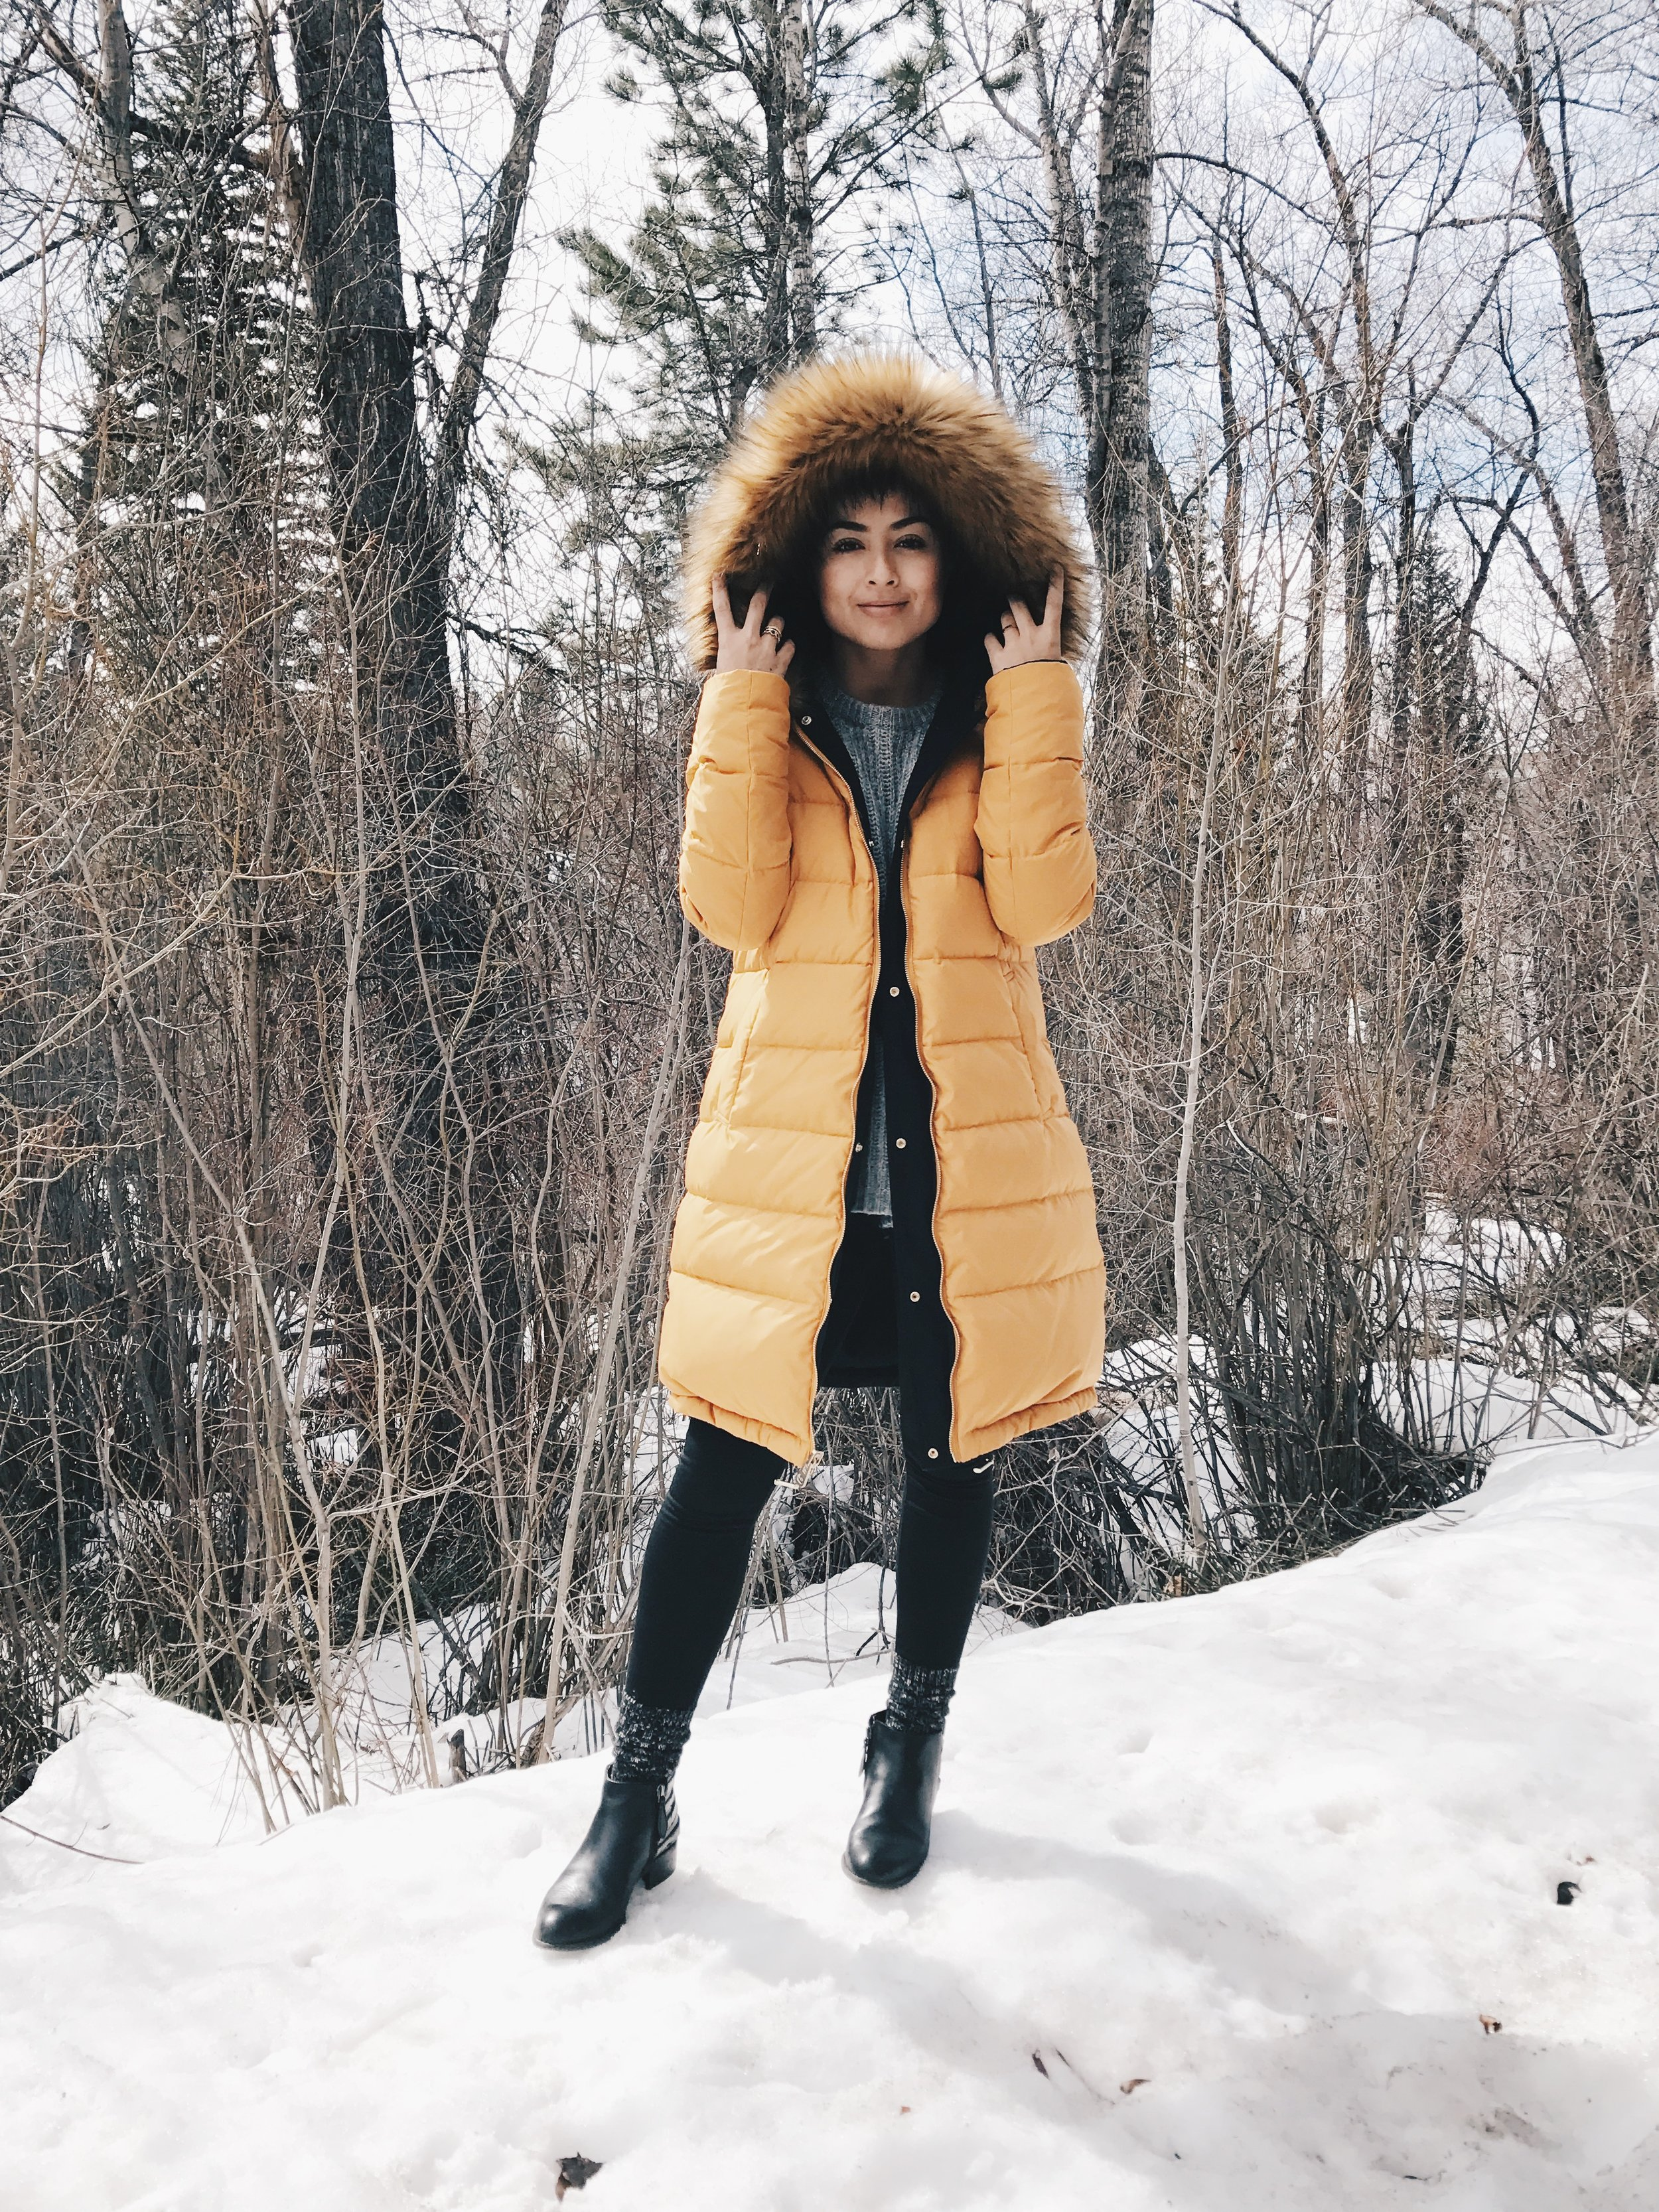 The snow might lead you to believe it was cold, but it was not bad. I wore this jacket because I bought it for Aspen-I had to wear it. Also, it's mustard yellow and I love it.